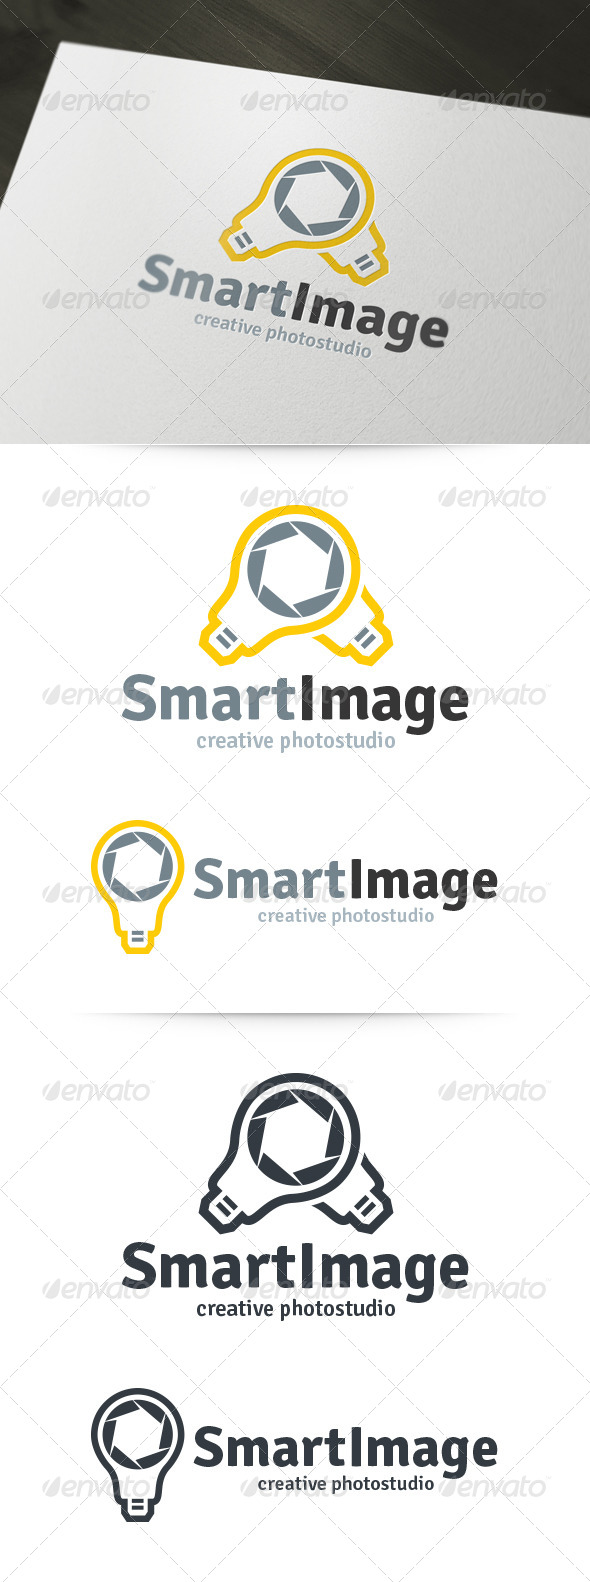 Smart Image - Photography Logo - Objects Logo Templates